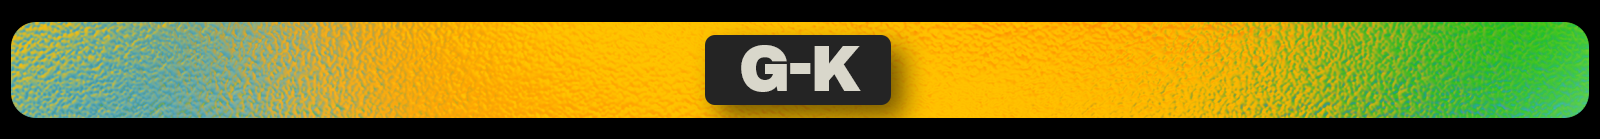 G-K (1).png